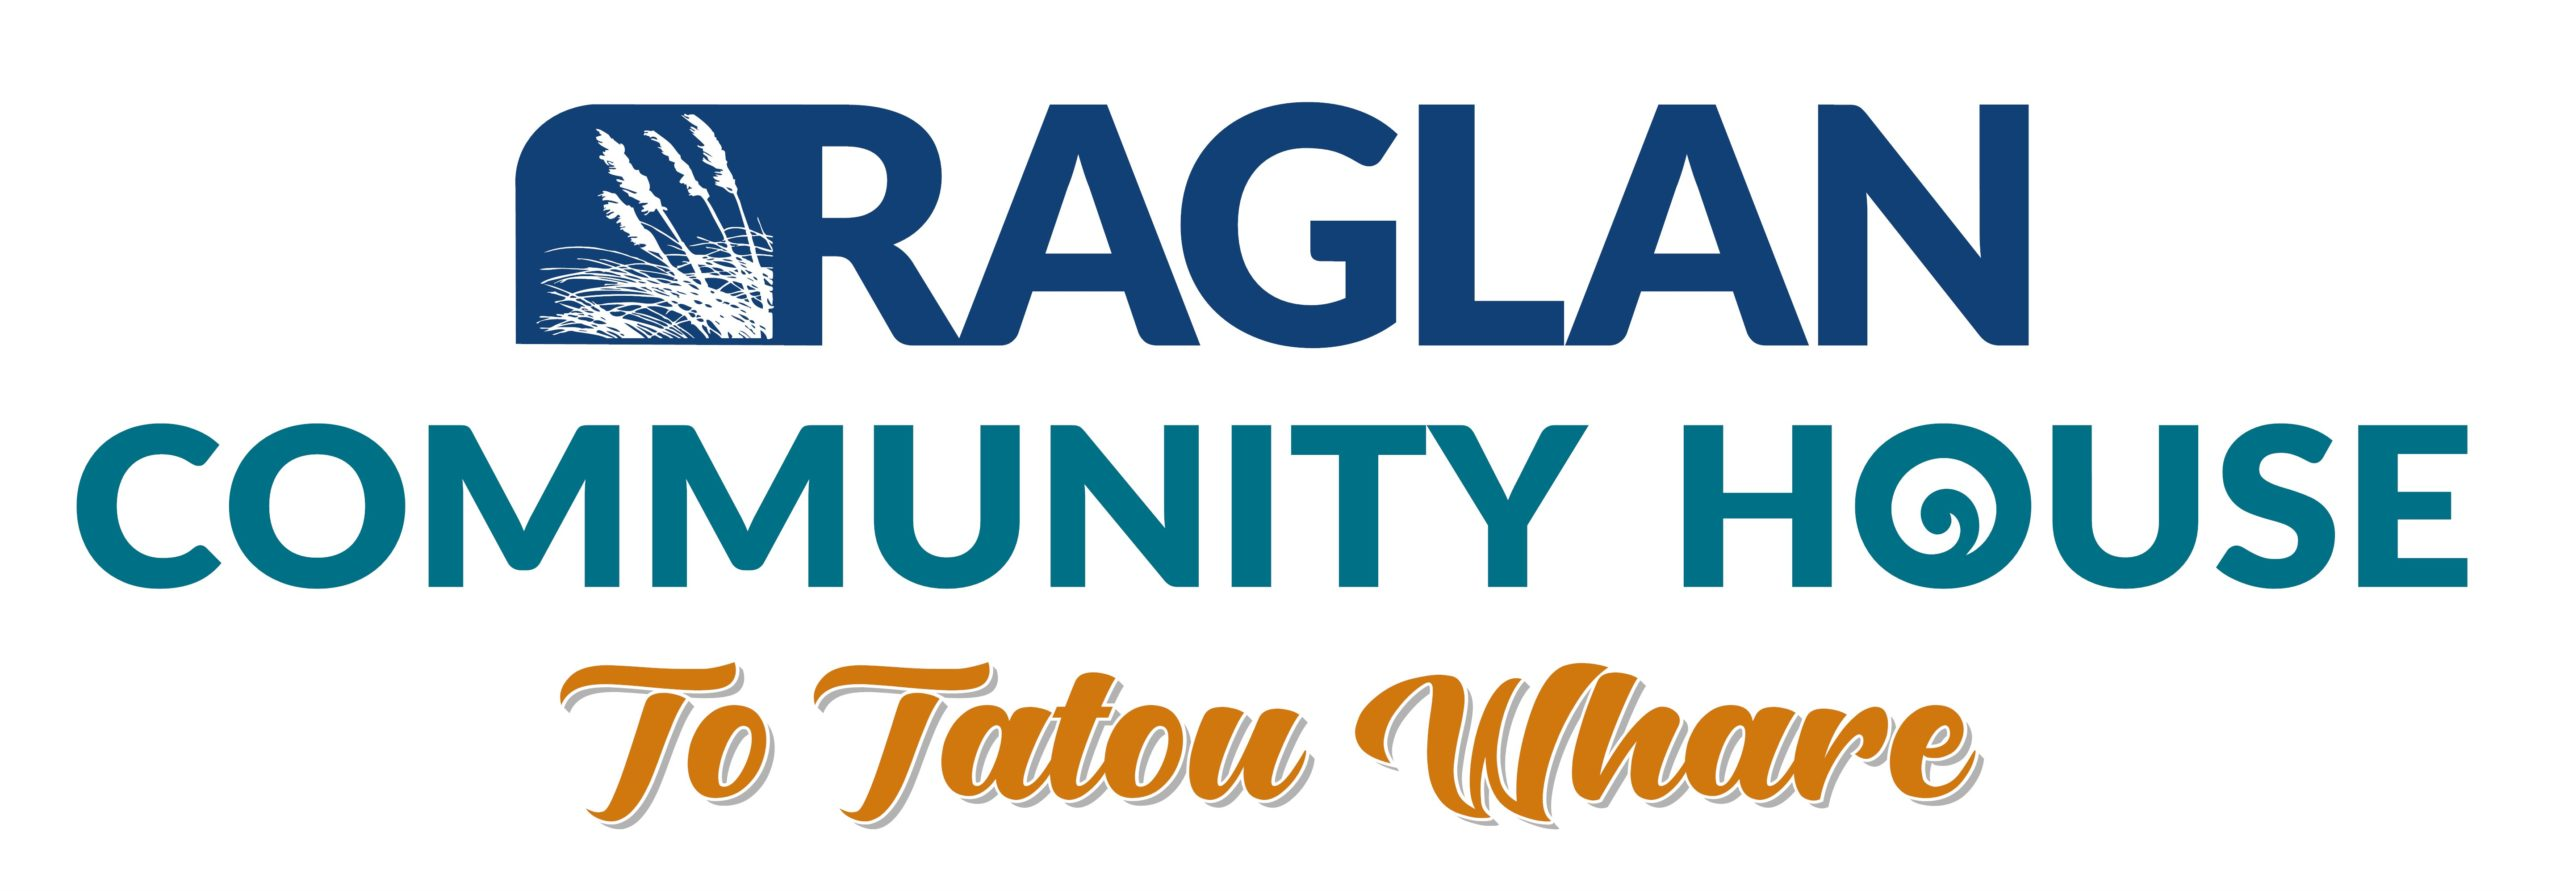 Raglan Community House Logo